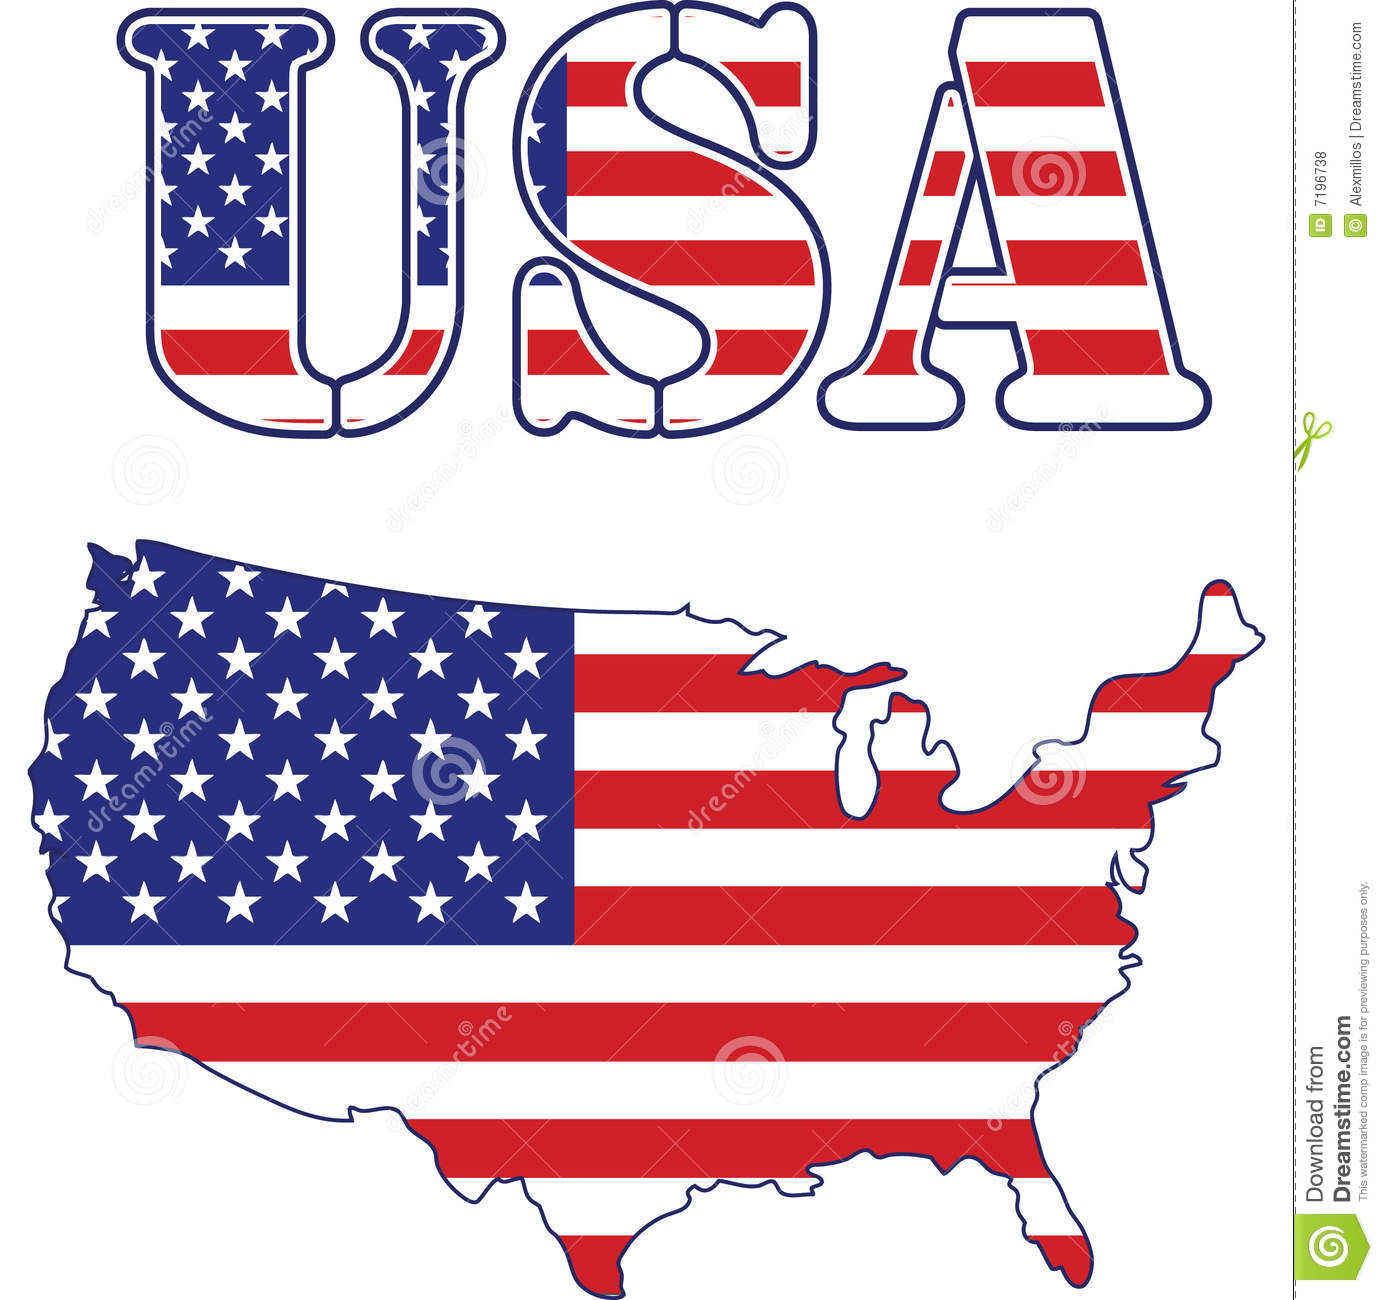 Free us map flag clipart picture USA Map And Text Flag Royalty Free Stock Photos - Image: 7196738 picture